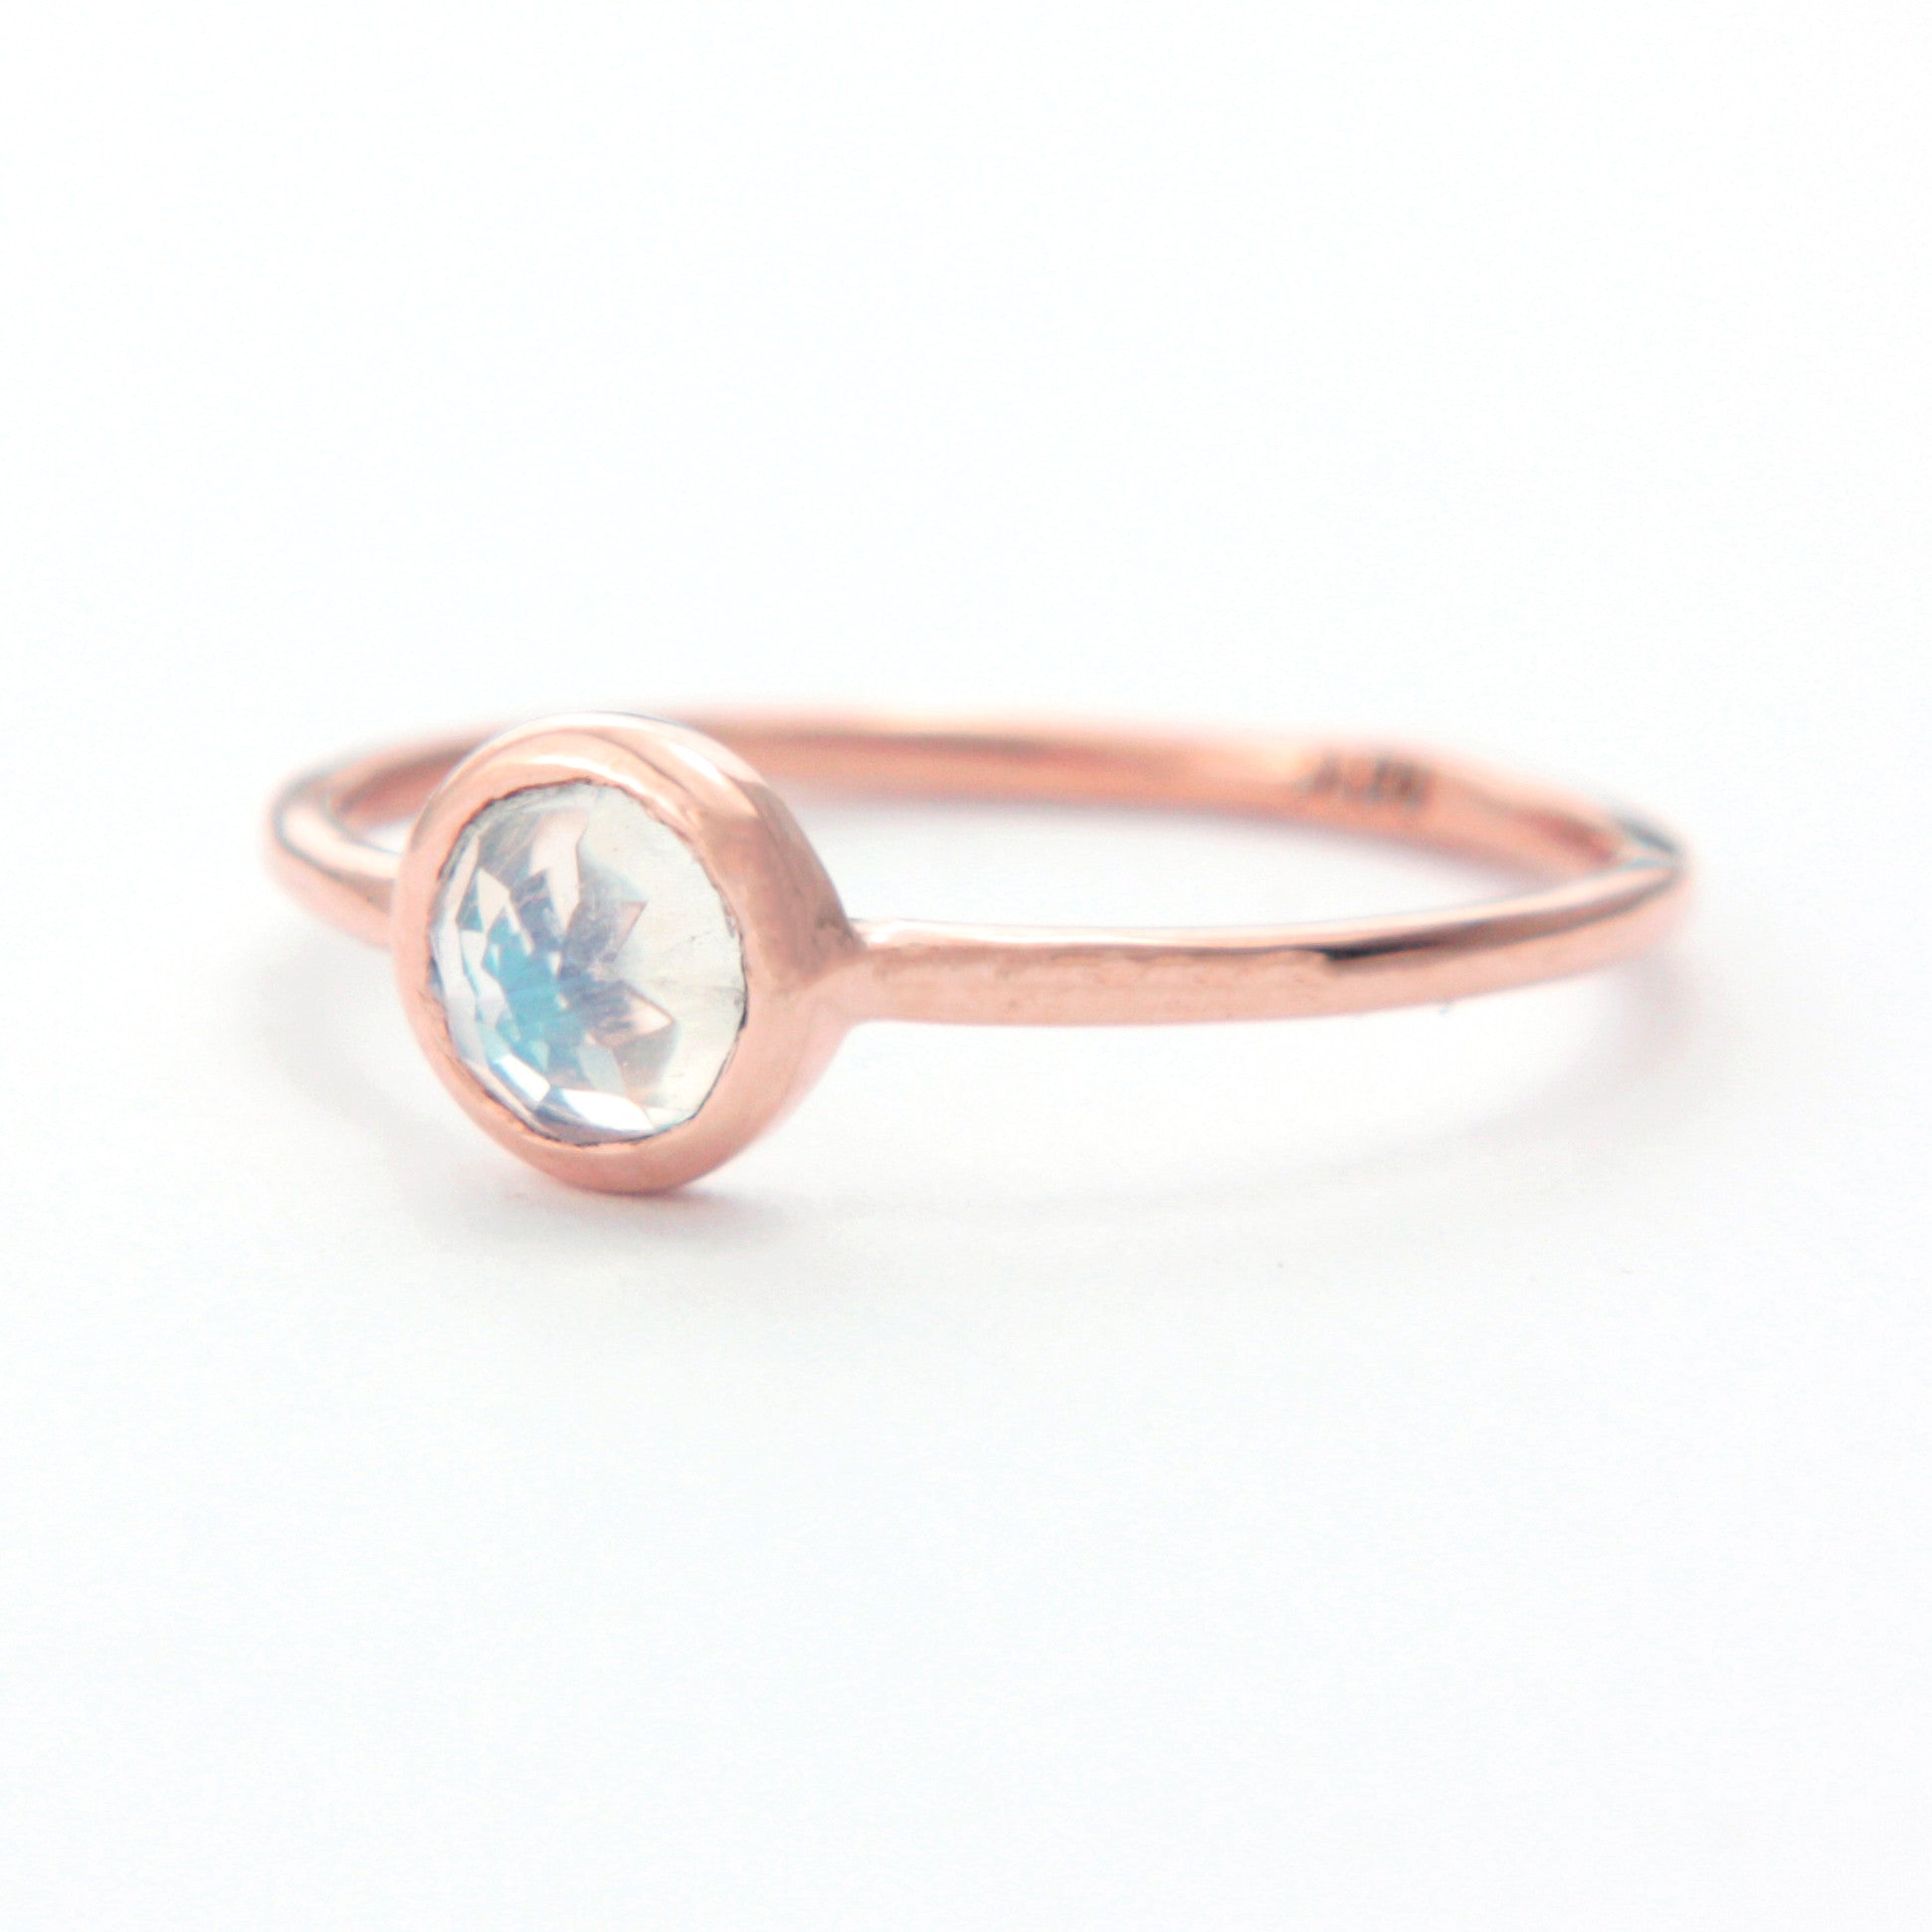 Rose Cut Moonstone Gold Ring 14k Rose Gold - Manari Design